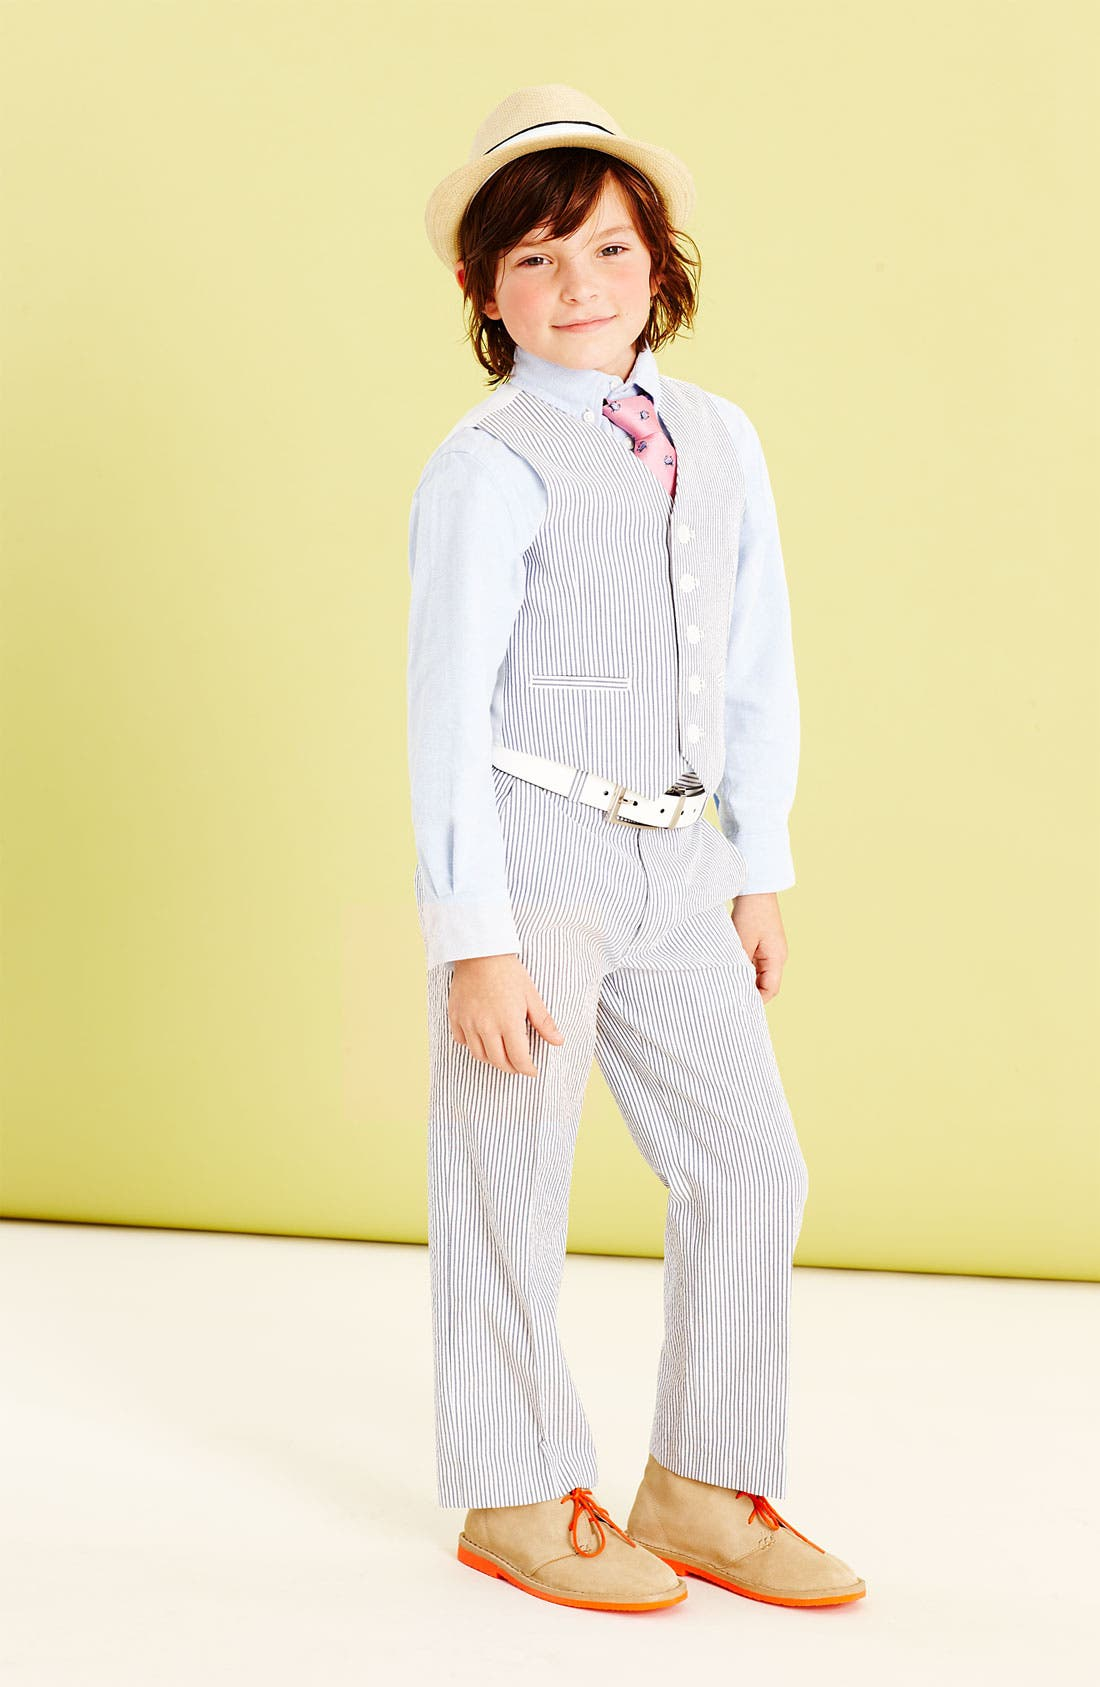 Main Image - C2 by Calibrate Vest, Nordstrom Oxford Shirt & Trousers (Little Boys)